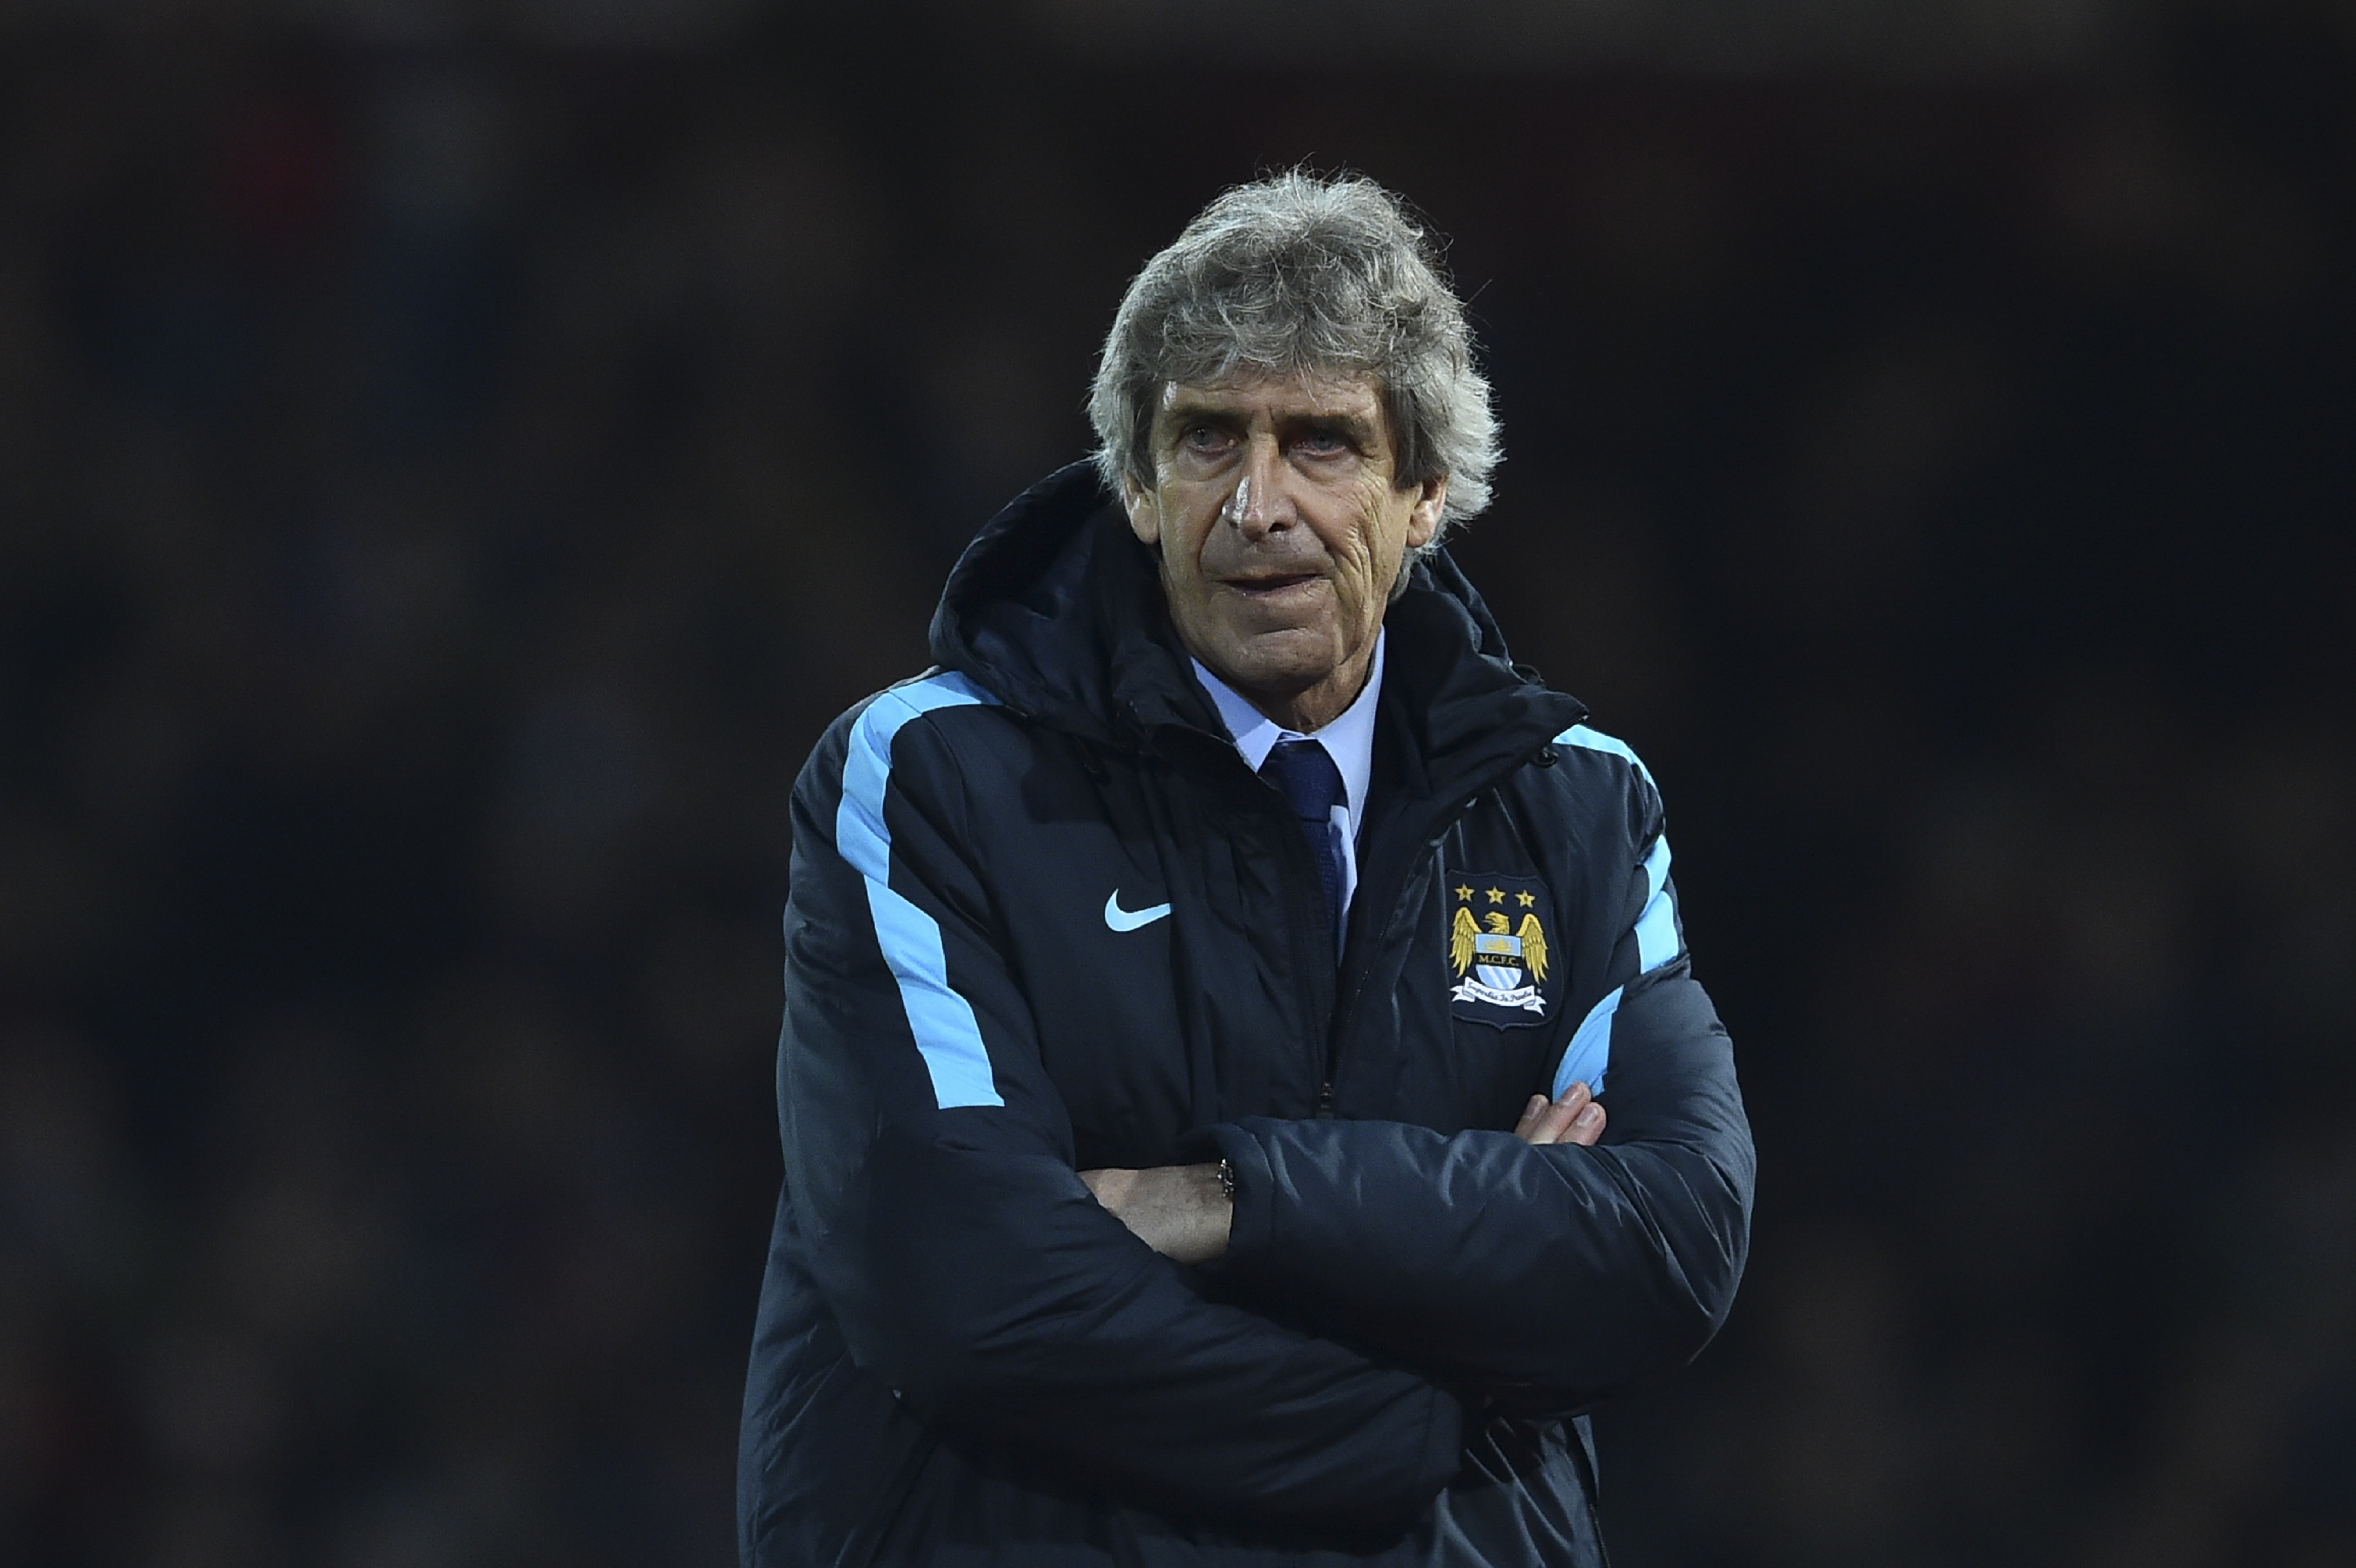 Manchester City, everton, Manchester City stream,everton stream, everton live, everton online, Manchester City stream, second leg stream, Liverpool live online, vivo, stream, online, watch, free, live, channel, app, phone, tablet, sling, free